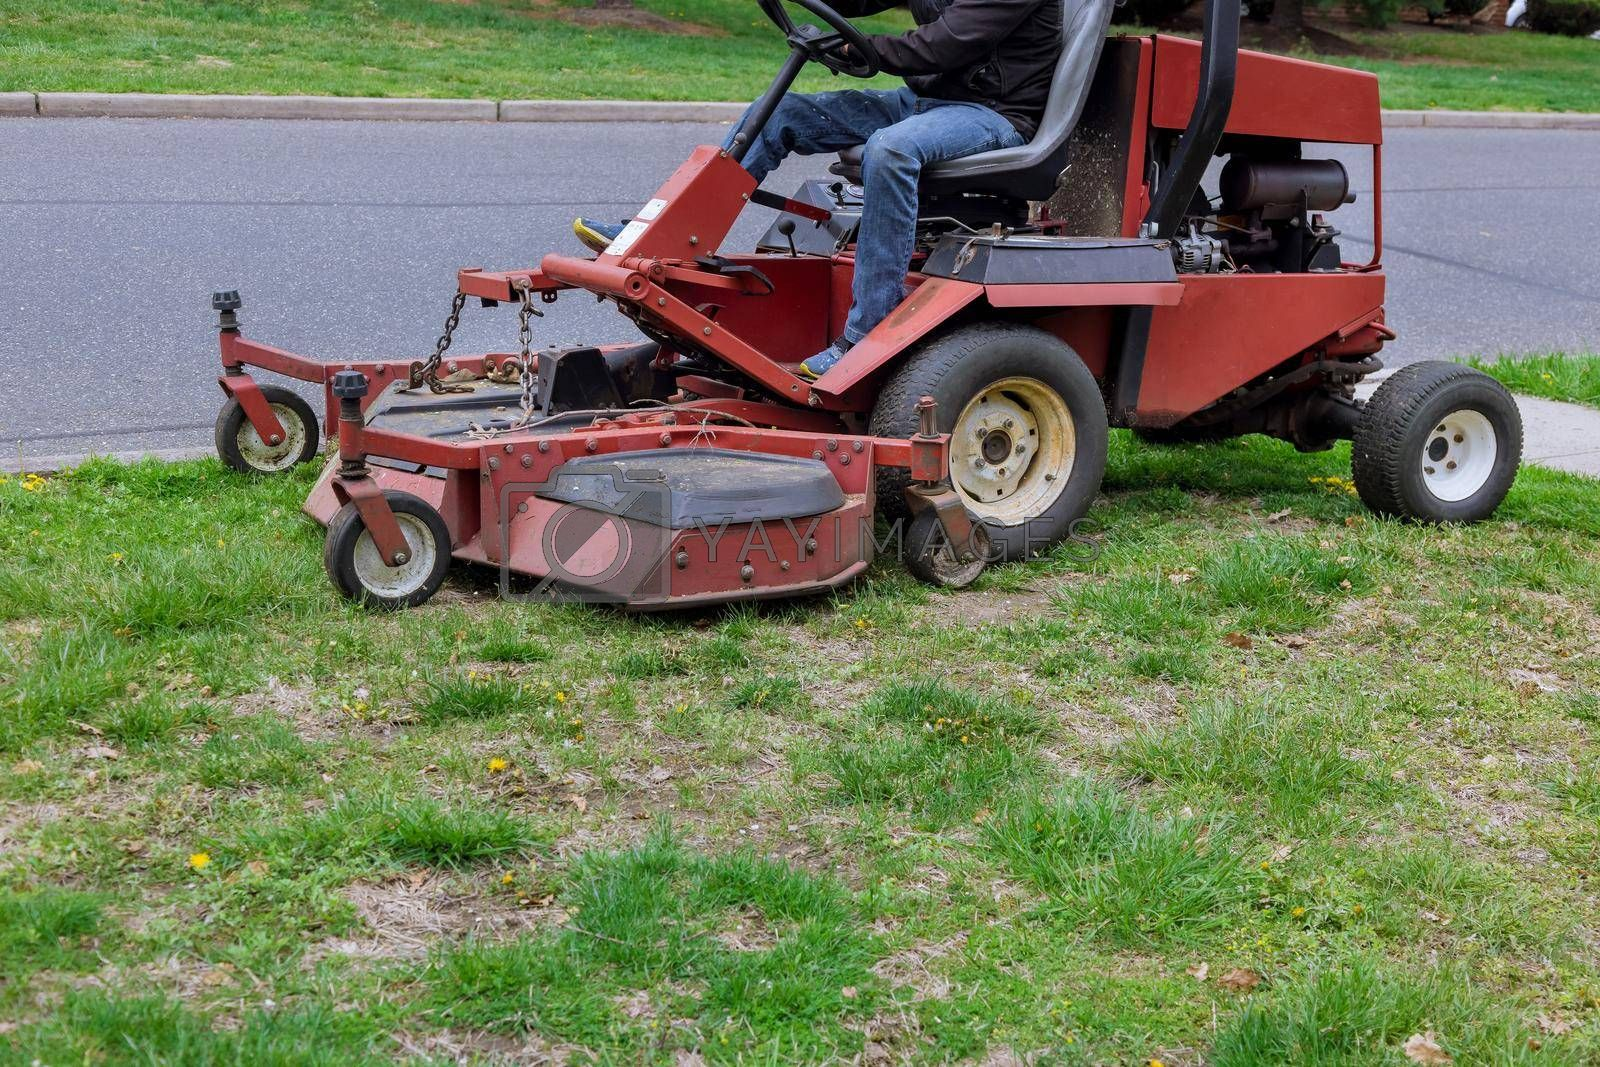 Royalty free image of Lawn mower cutting green grass in gardening backyard by ungvar